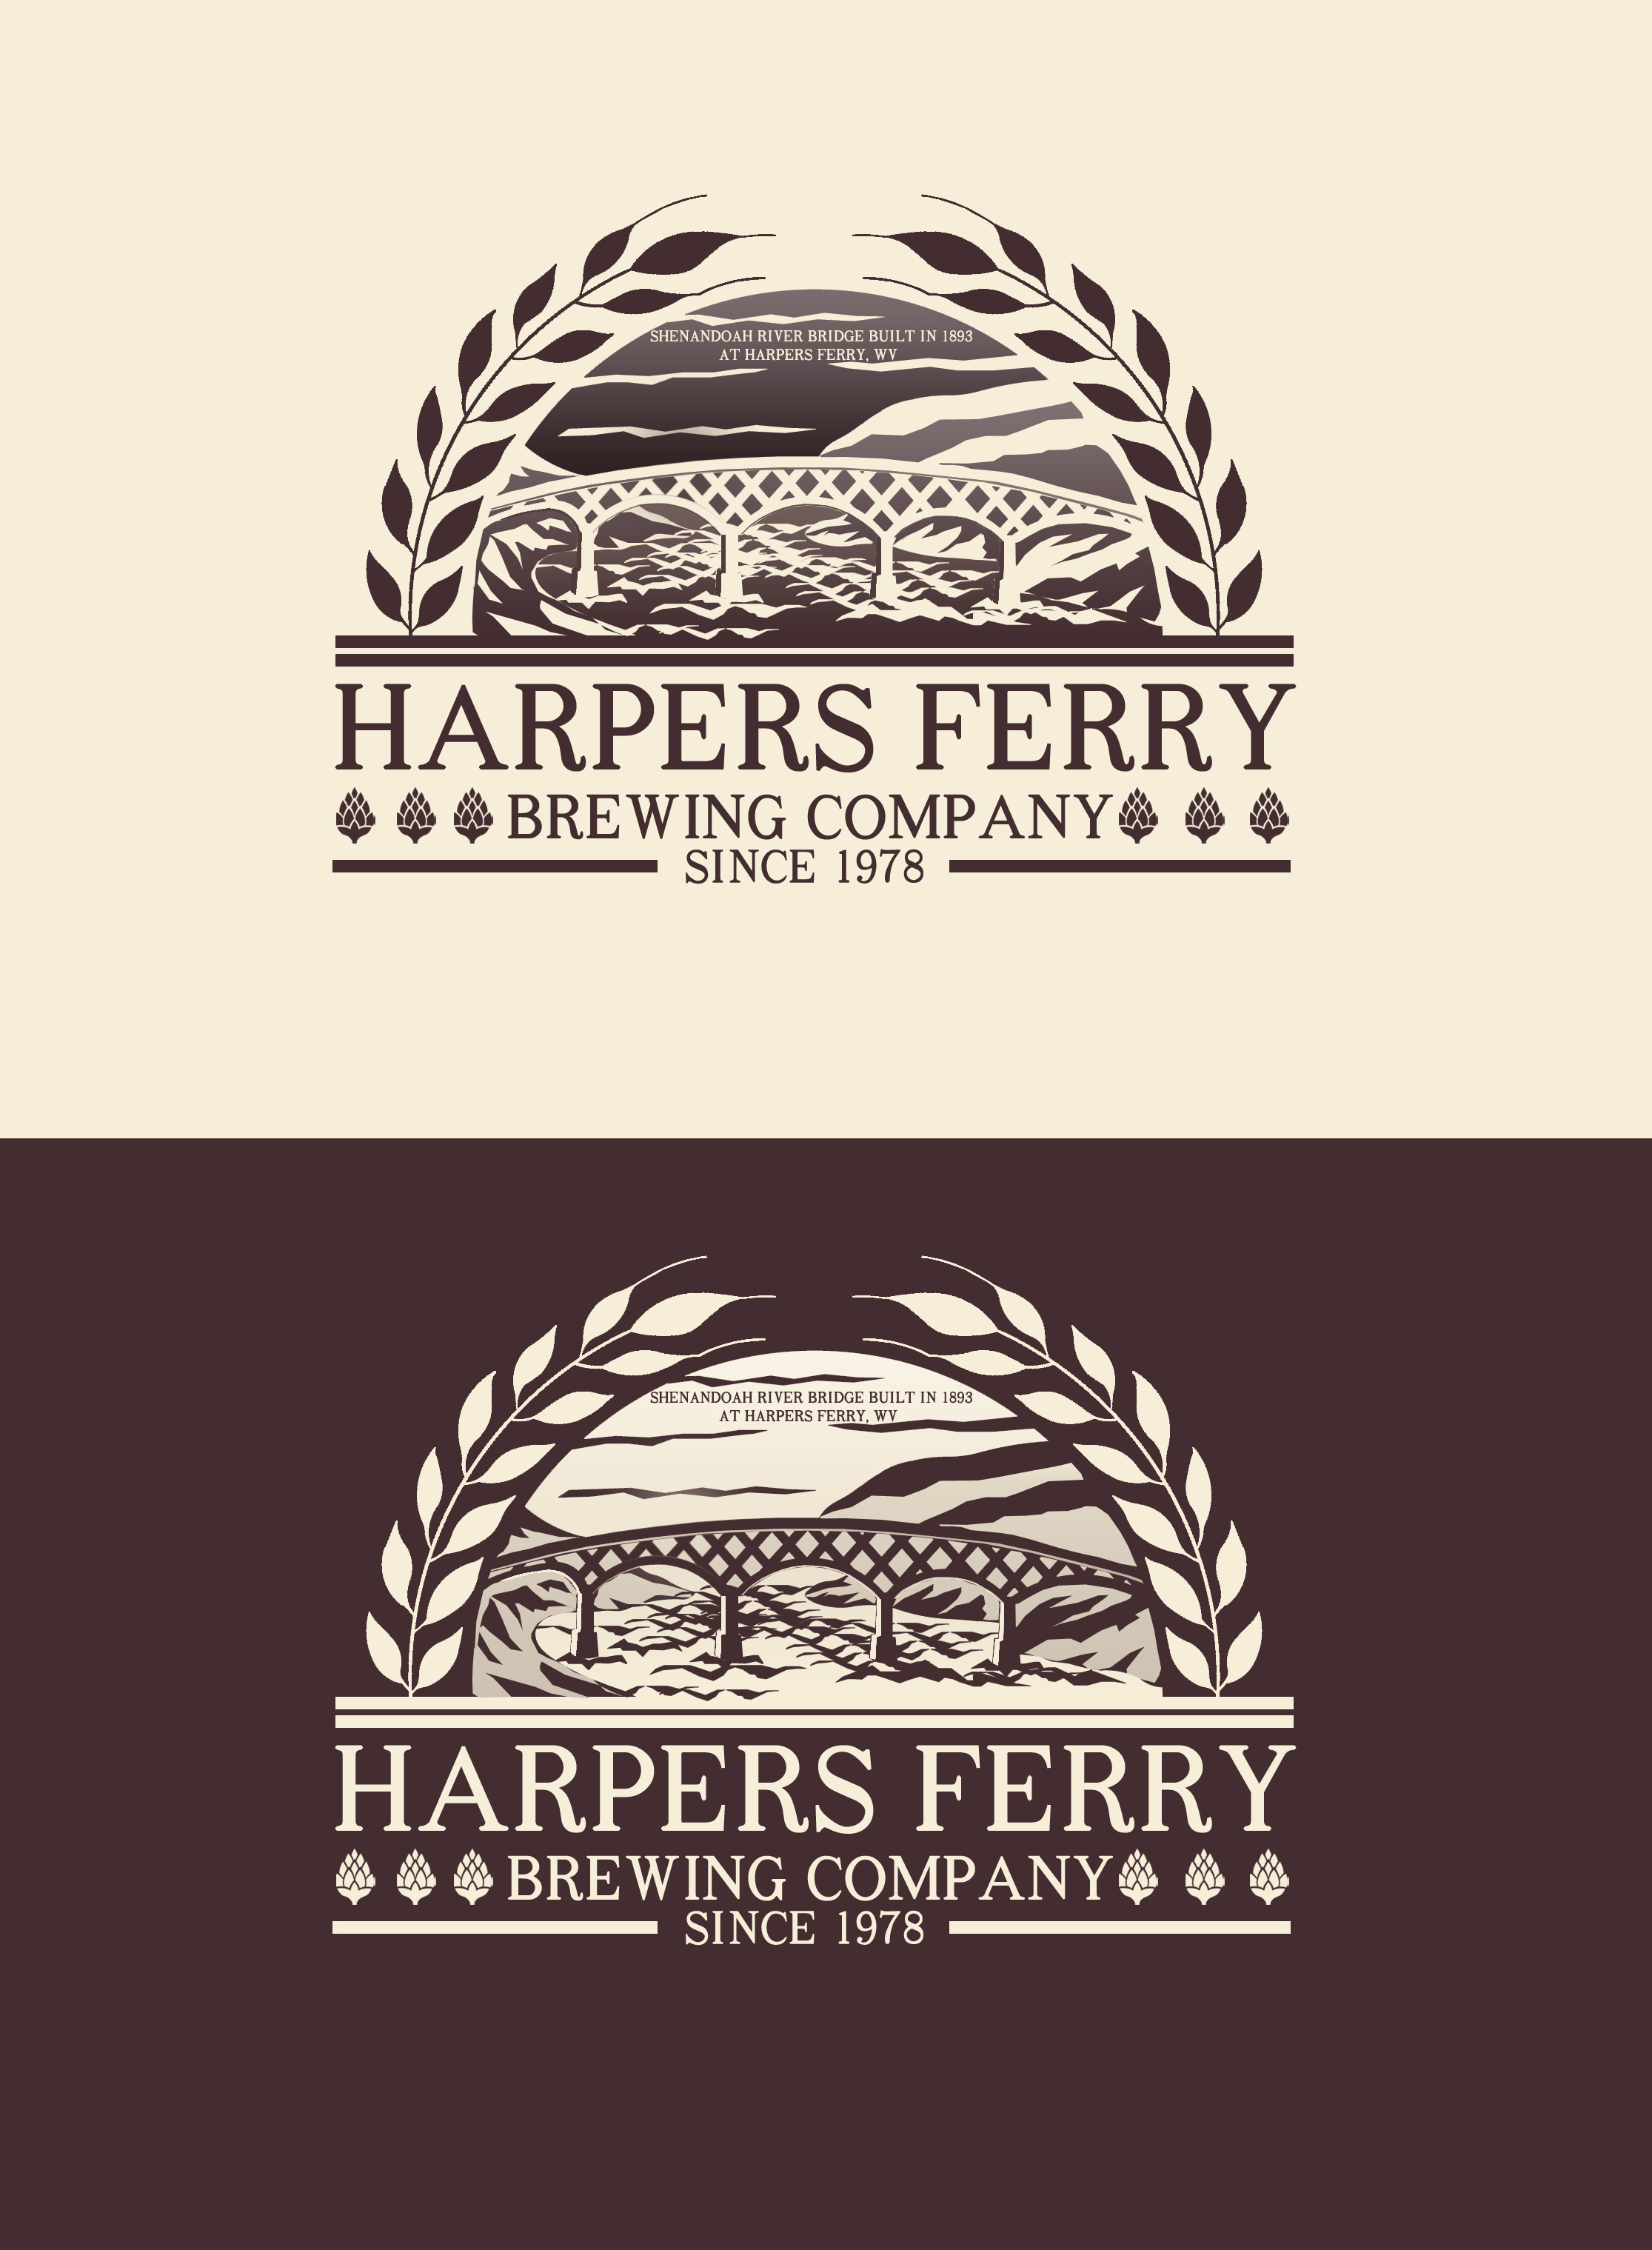 Logo Design by JSDESIGNGROUP - Entry No. 30 in the Logo Design Contest Unique Logo Design Wanted for Harpers ferry brewing company.